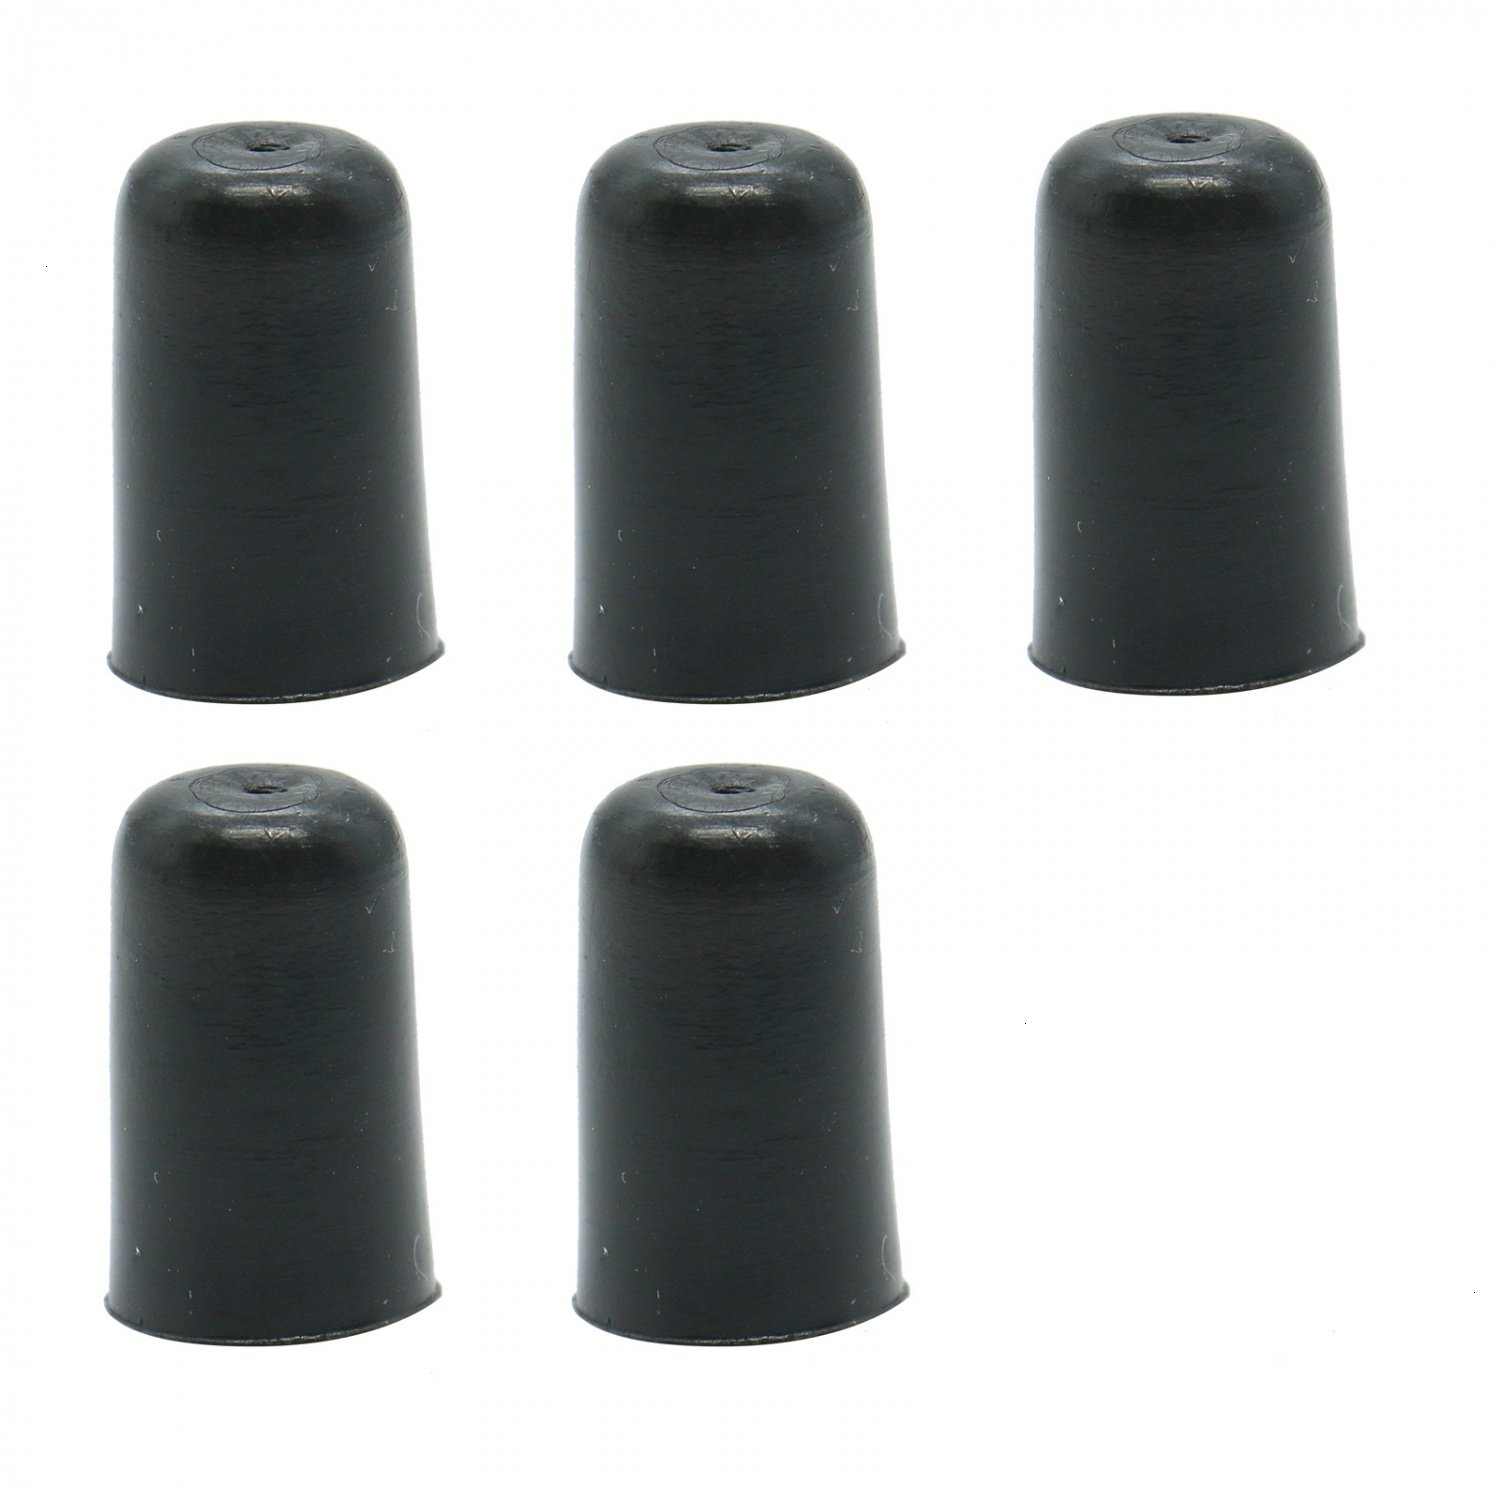 Buorsa Black Rubber Tip for Cello Endpin, Set of 5